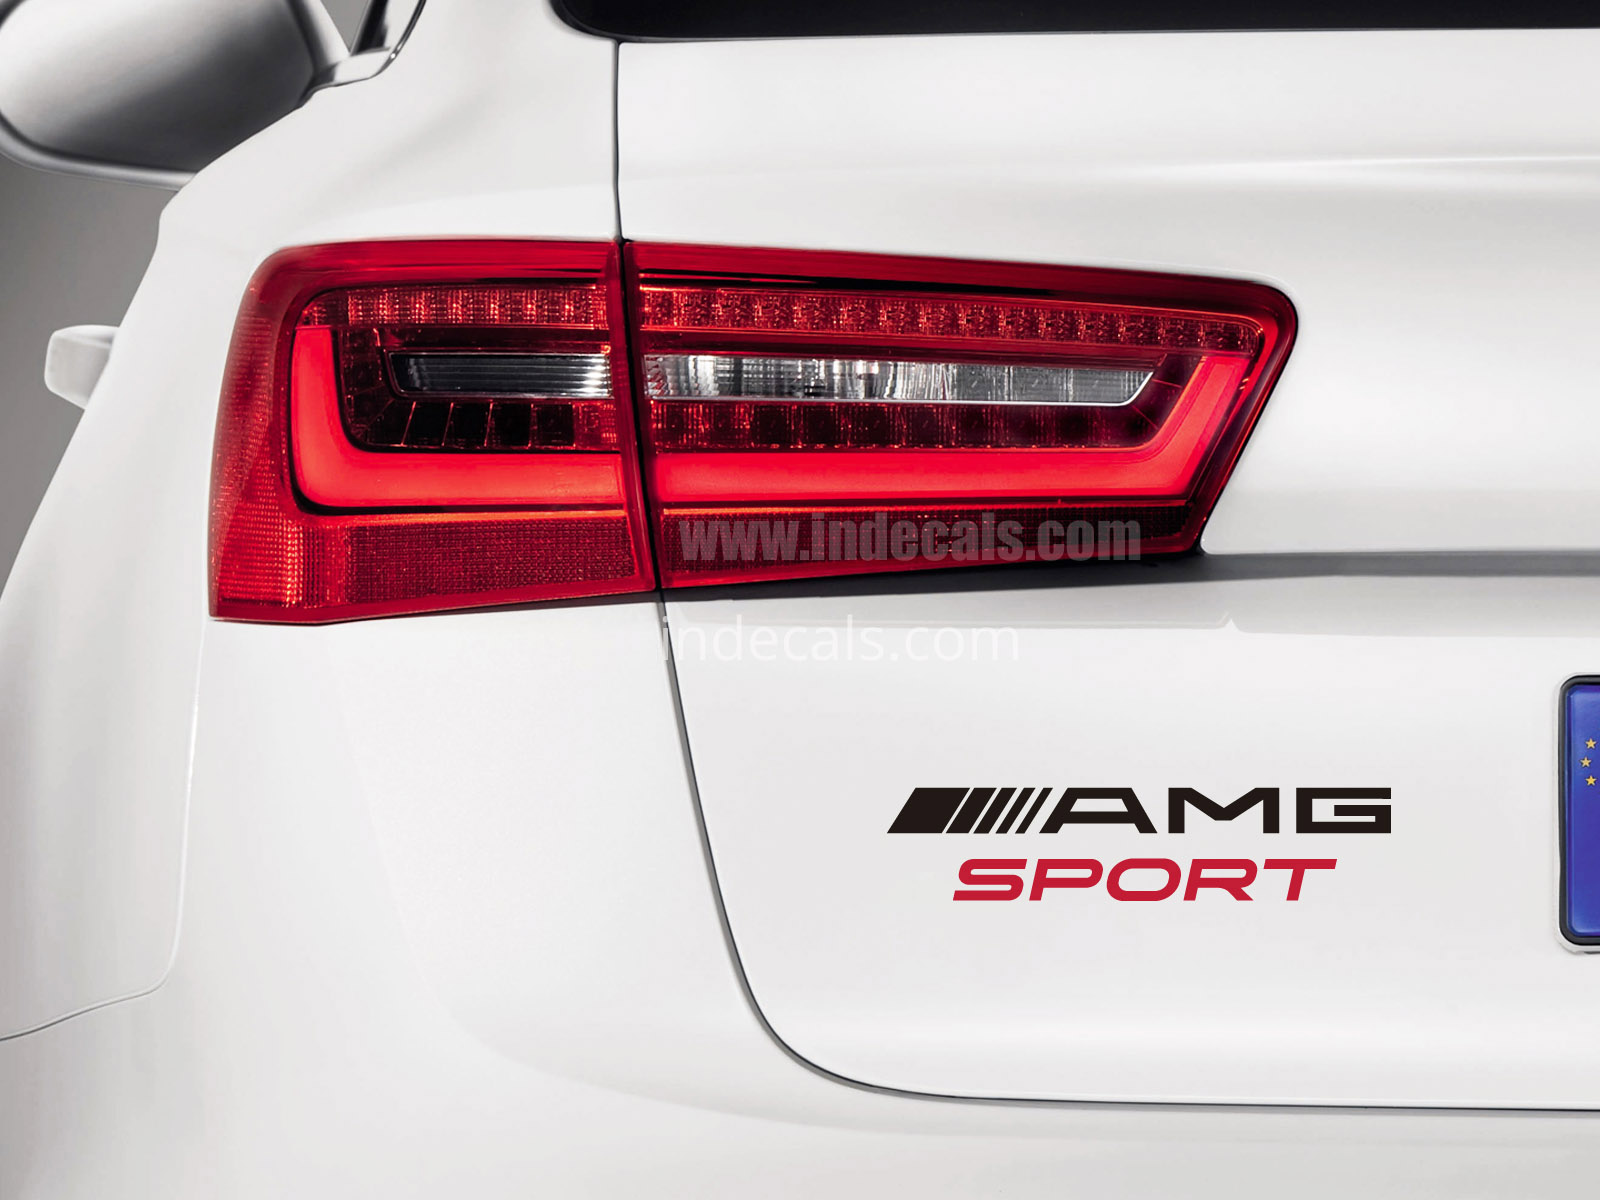 1 x AMG Sports Sticker for Trunk - Black & Red